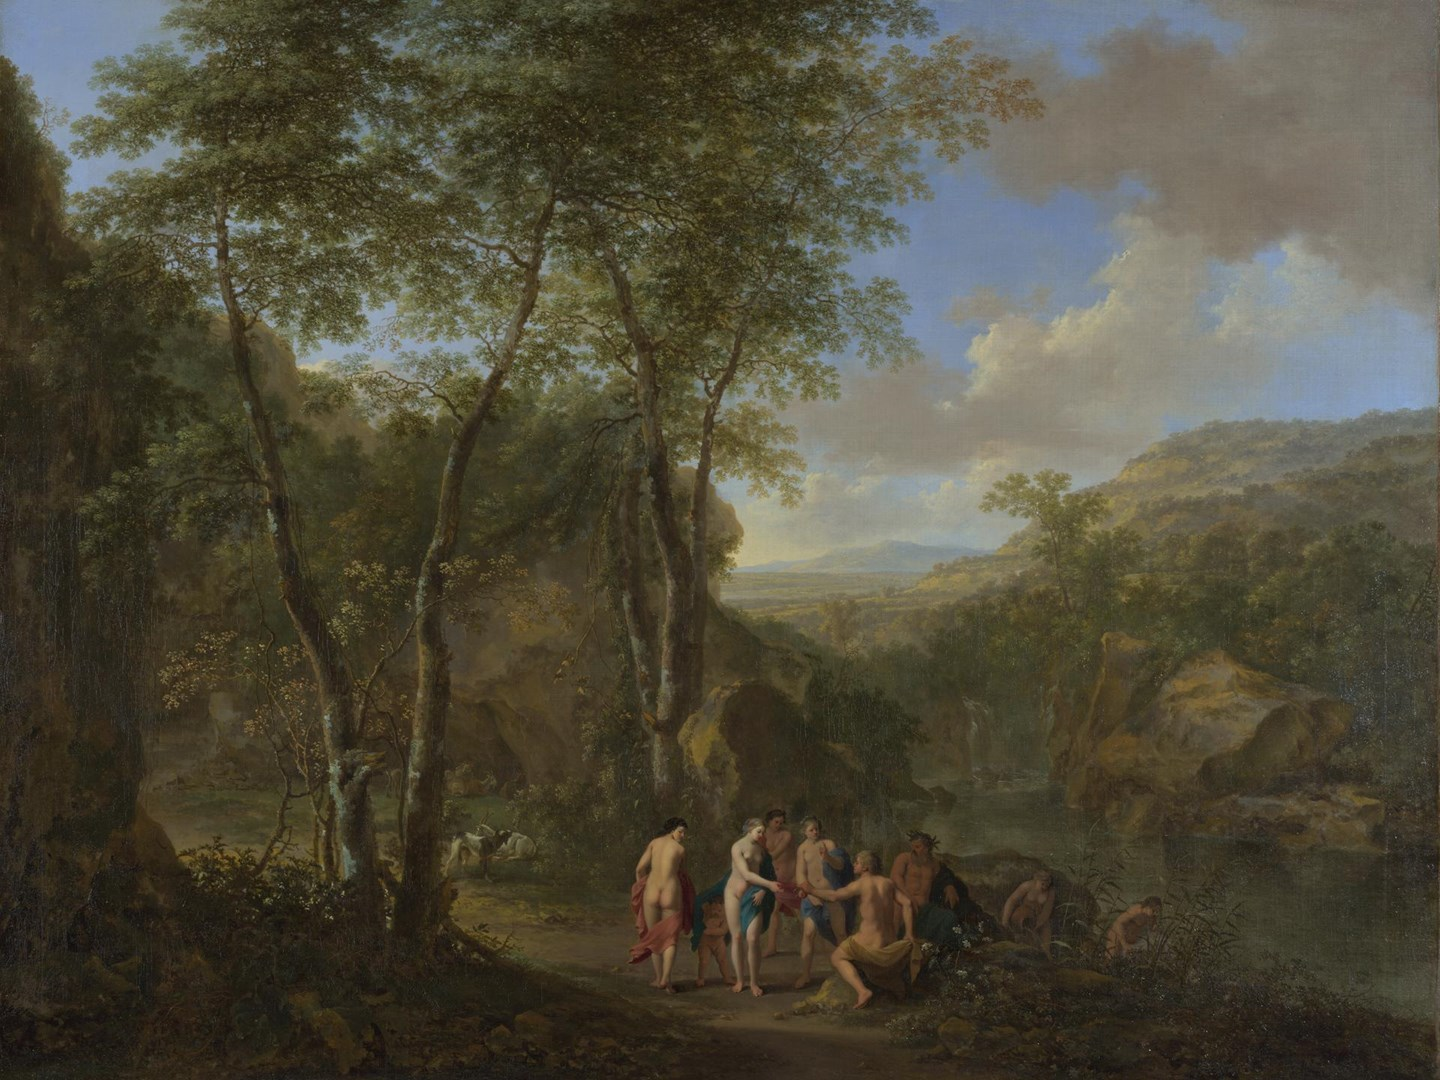 A Landscape with the Judgement of Paris by Jan Both and Cornelis van Poelenburgh